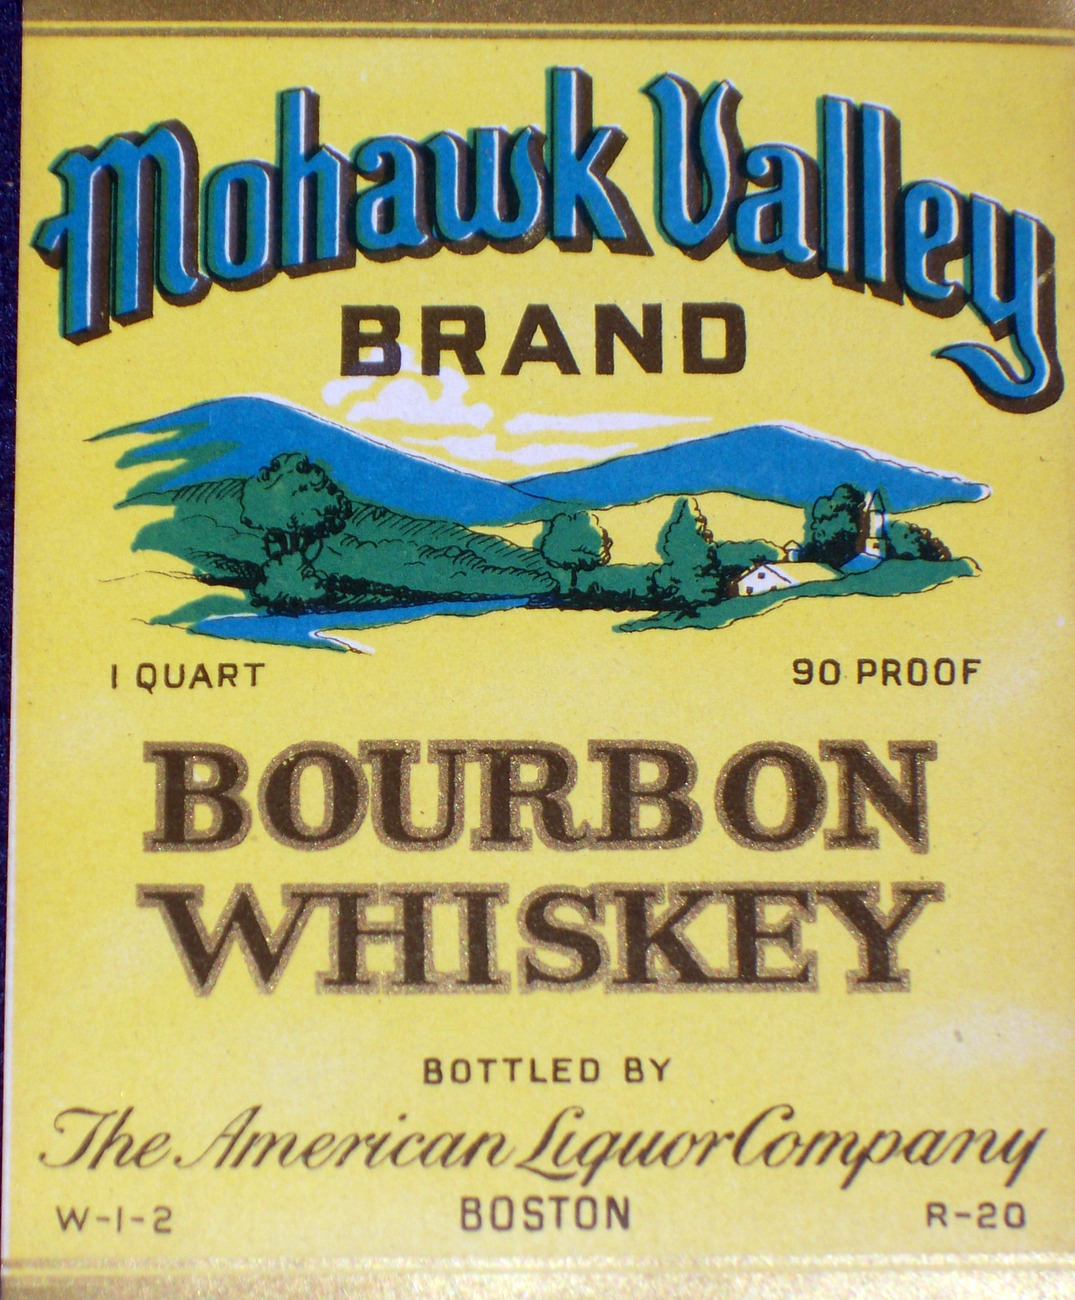 Striking! Mohawk Valley Bourbon Whiskey Label, 1930s